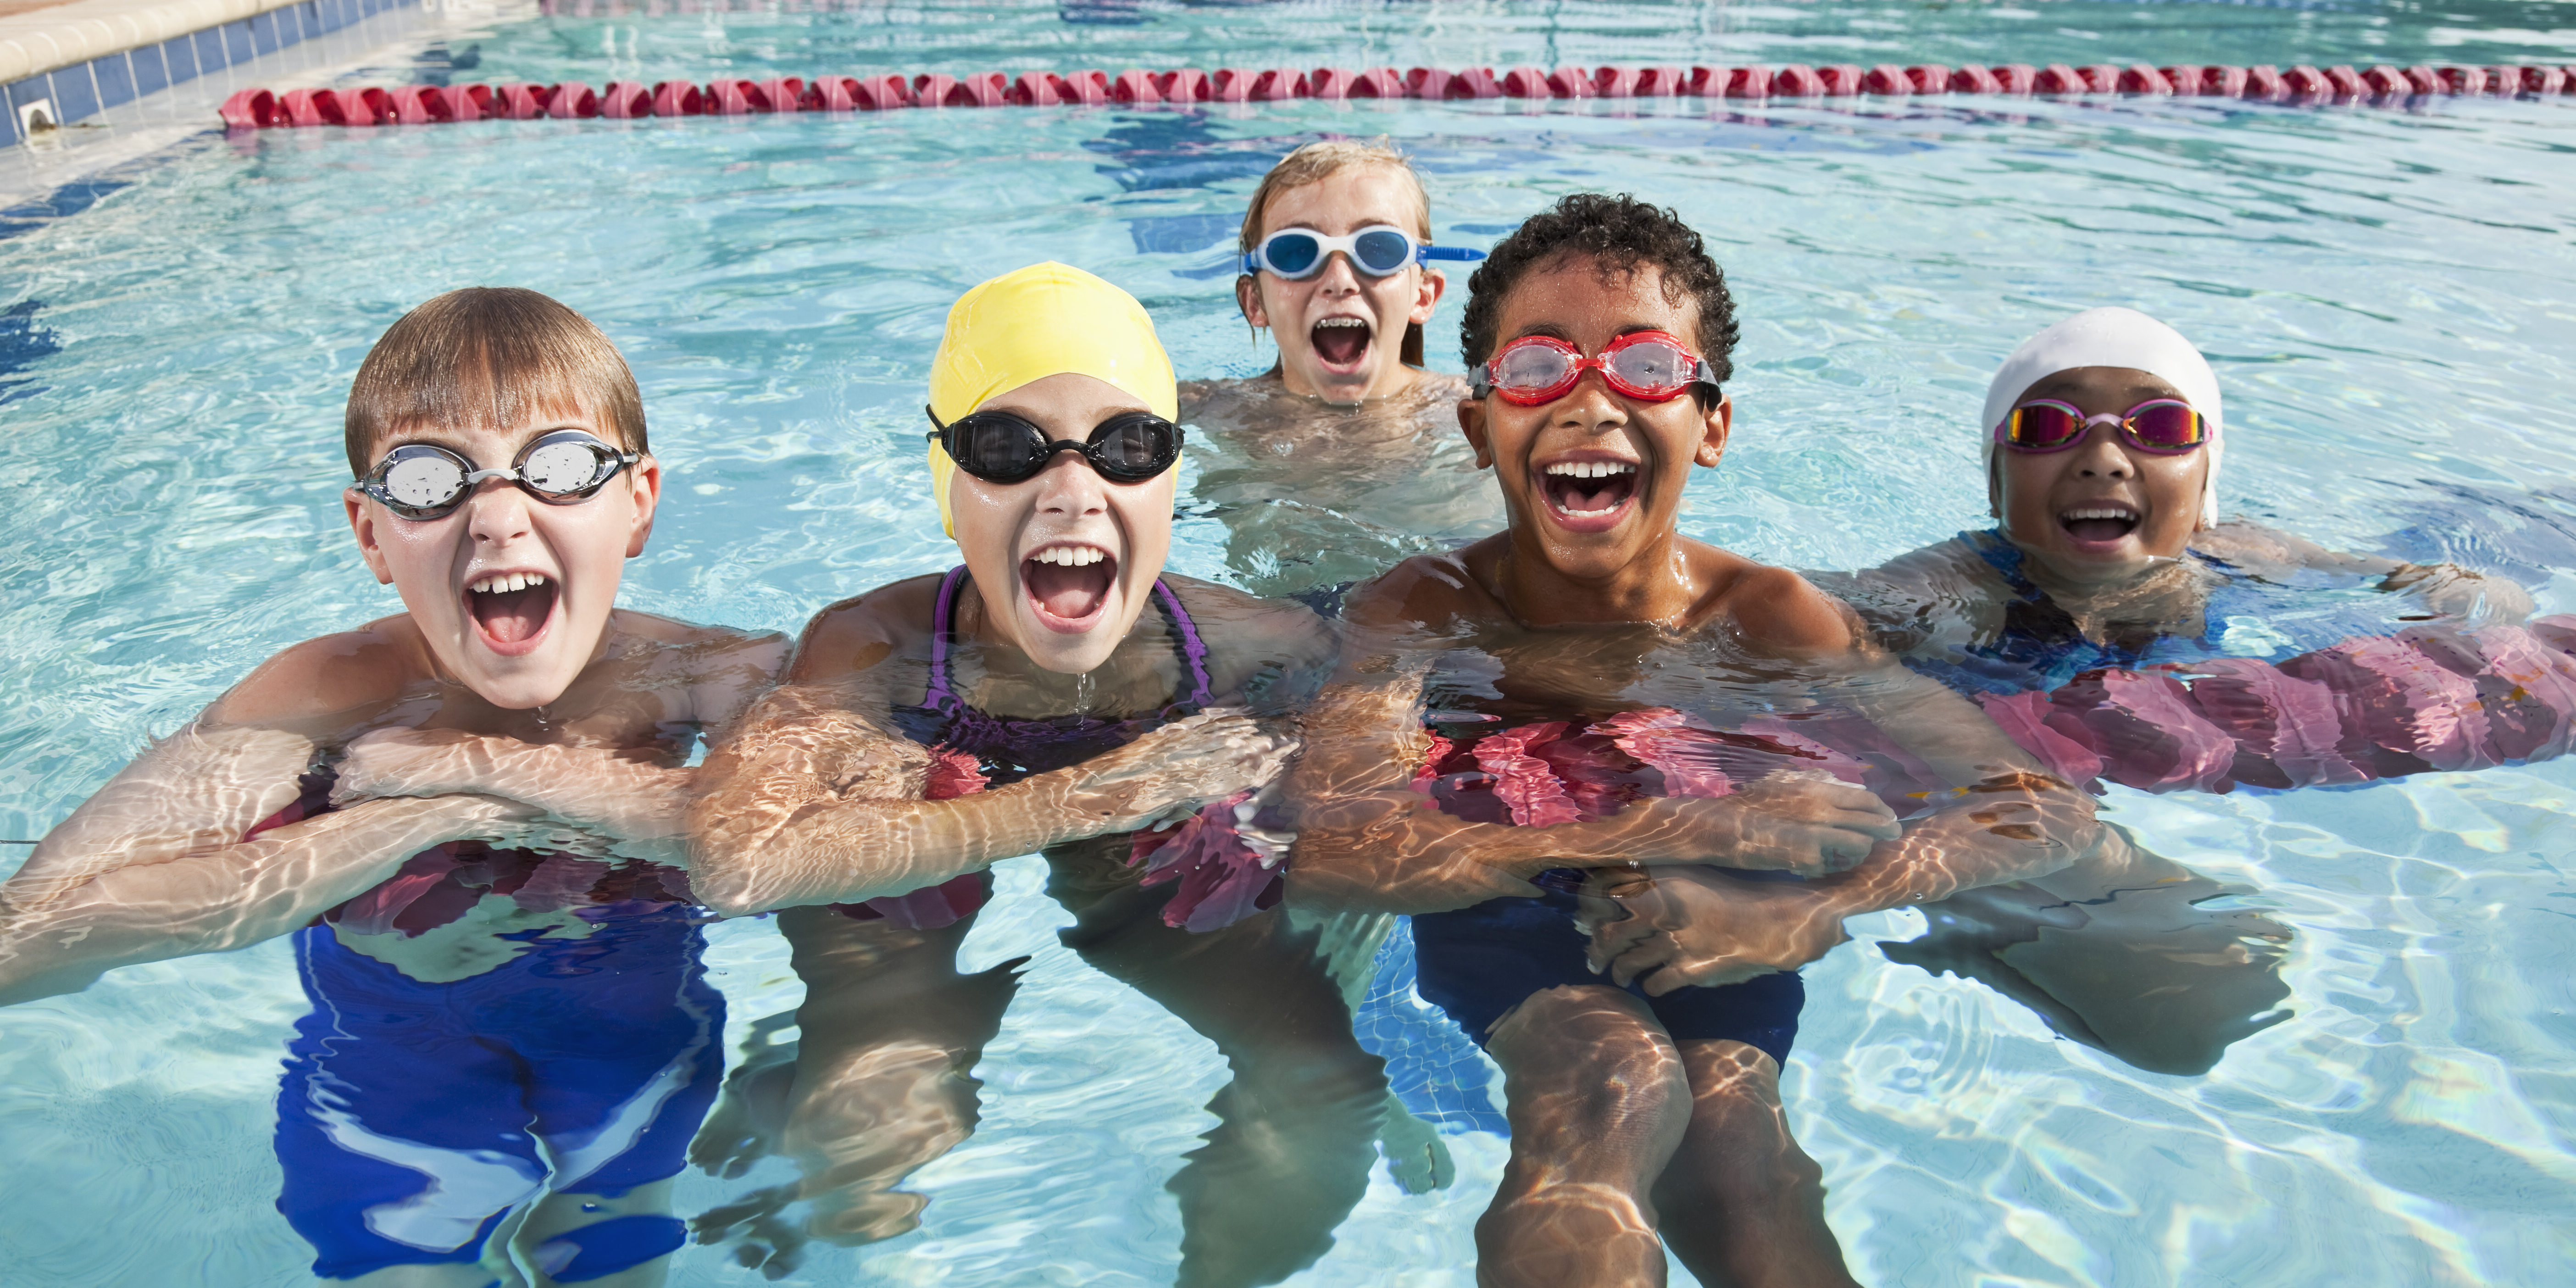 A multiracial group of five children having fun in a swimming pool, hanging onto a lane rope, looking at the camera, laughing and shouting.  The three boys and two girls are 9 to 12 years old.  They are wearing swimsuits and goggles, and the girls have on swim caps.